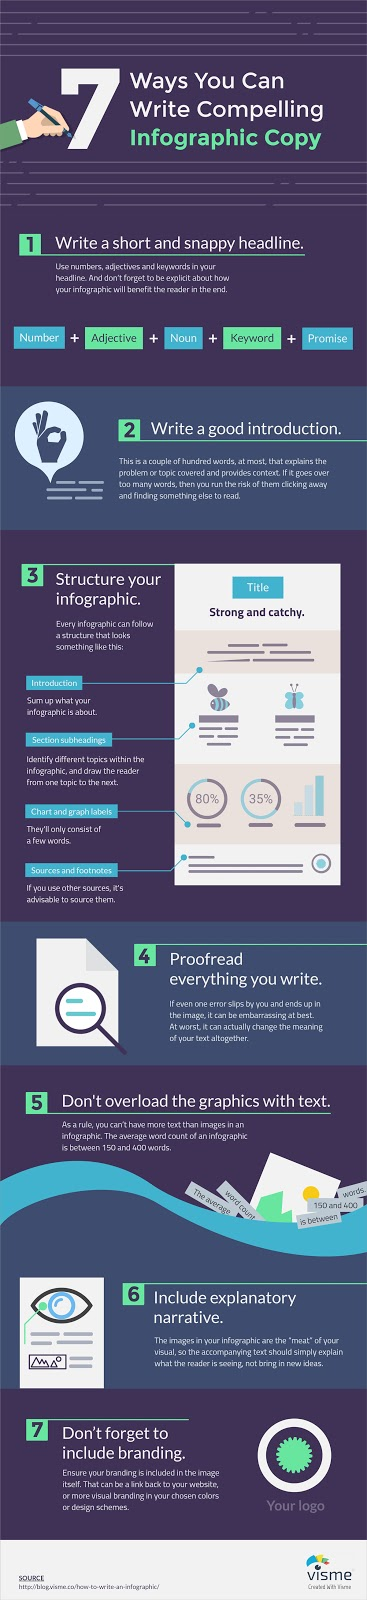 7 Ways You Can Write Compelling Infographic Copy #Infographic